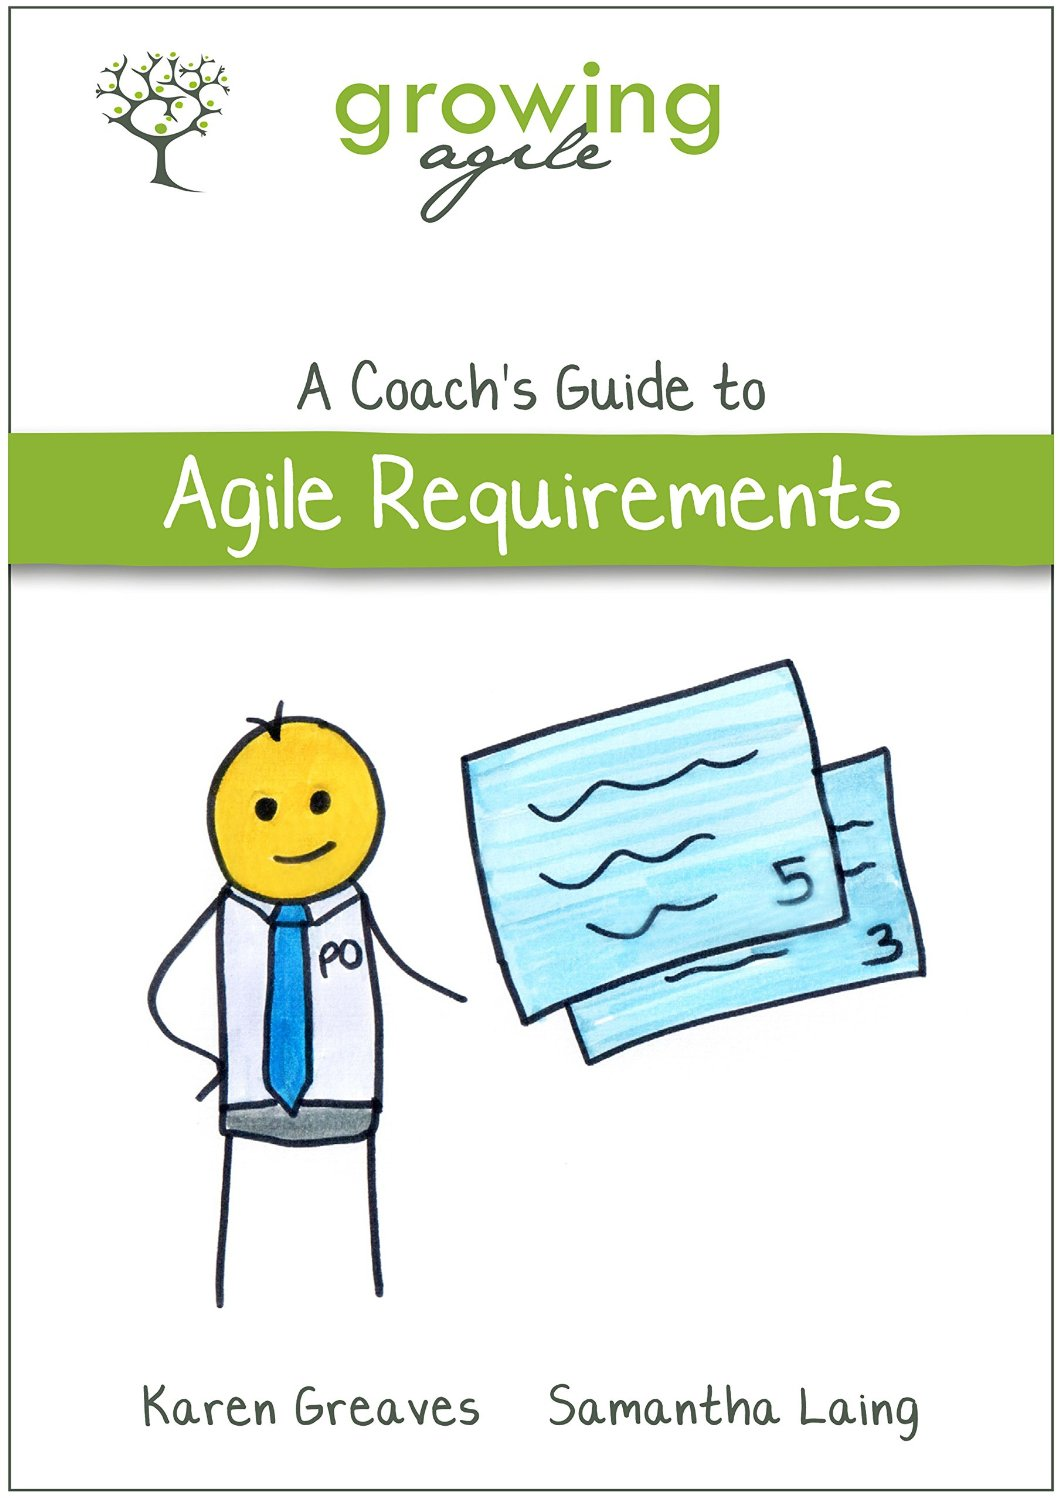 Growing Agile: A Coach's Guide to Agile Requirements (Growing Agile: A Coach's Guide Series Book 3) free download